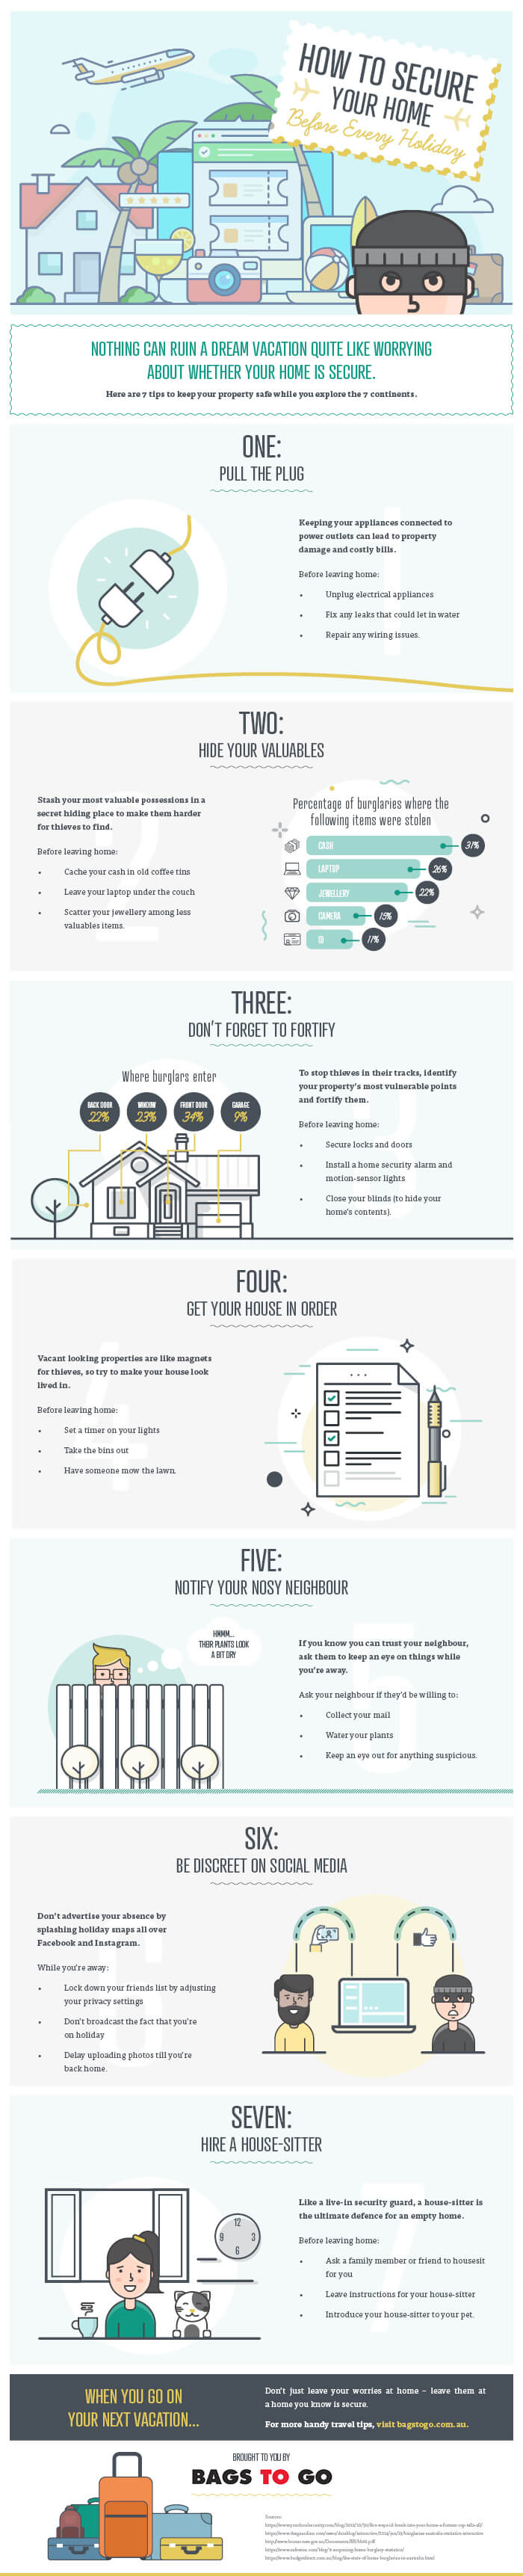 tips on keeping house safe when away infographic